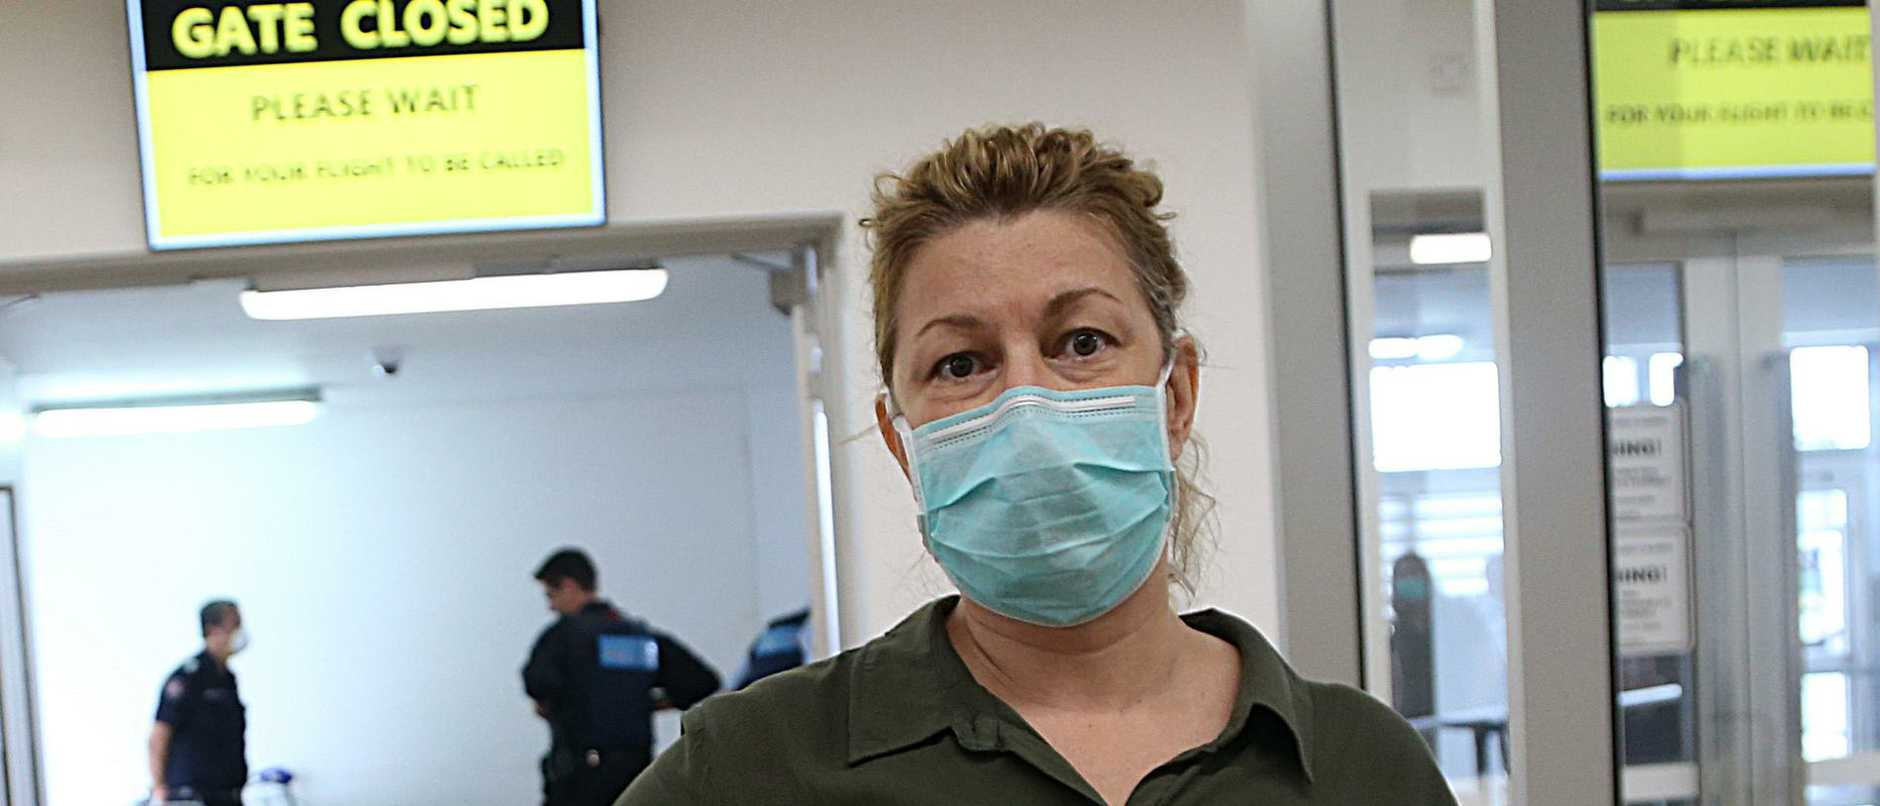 All international travellers coming to Australia could be forced to have pre-flight tests and wear masks.